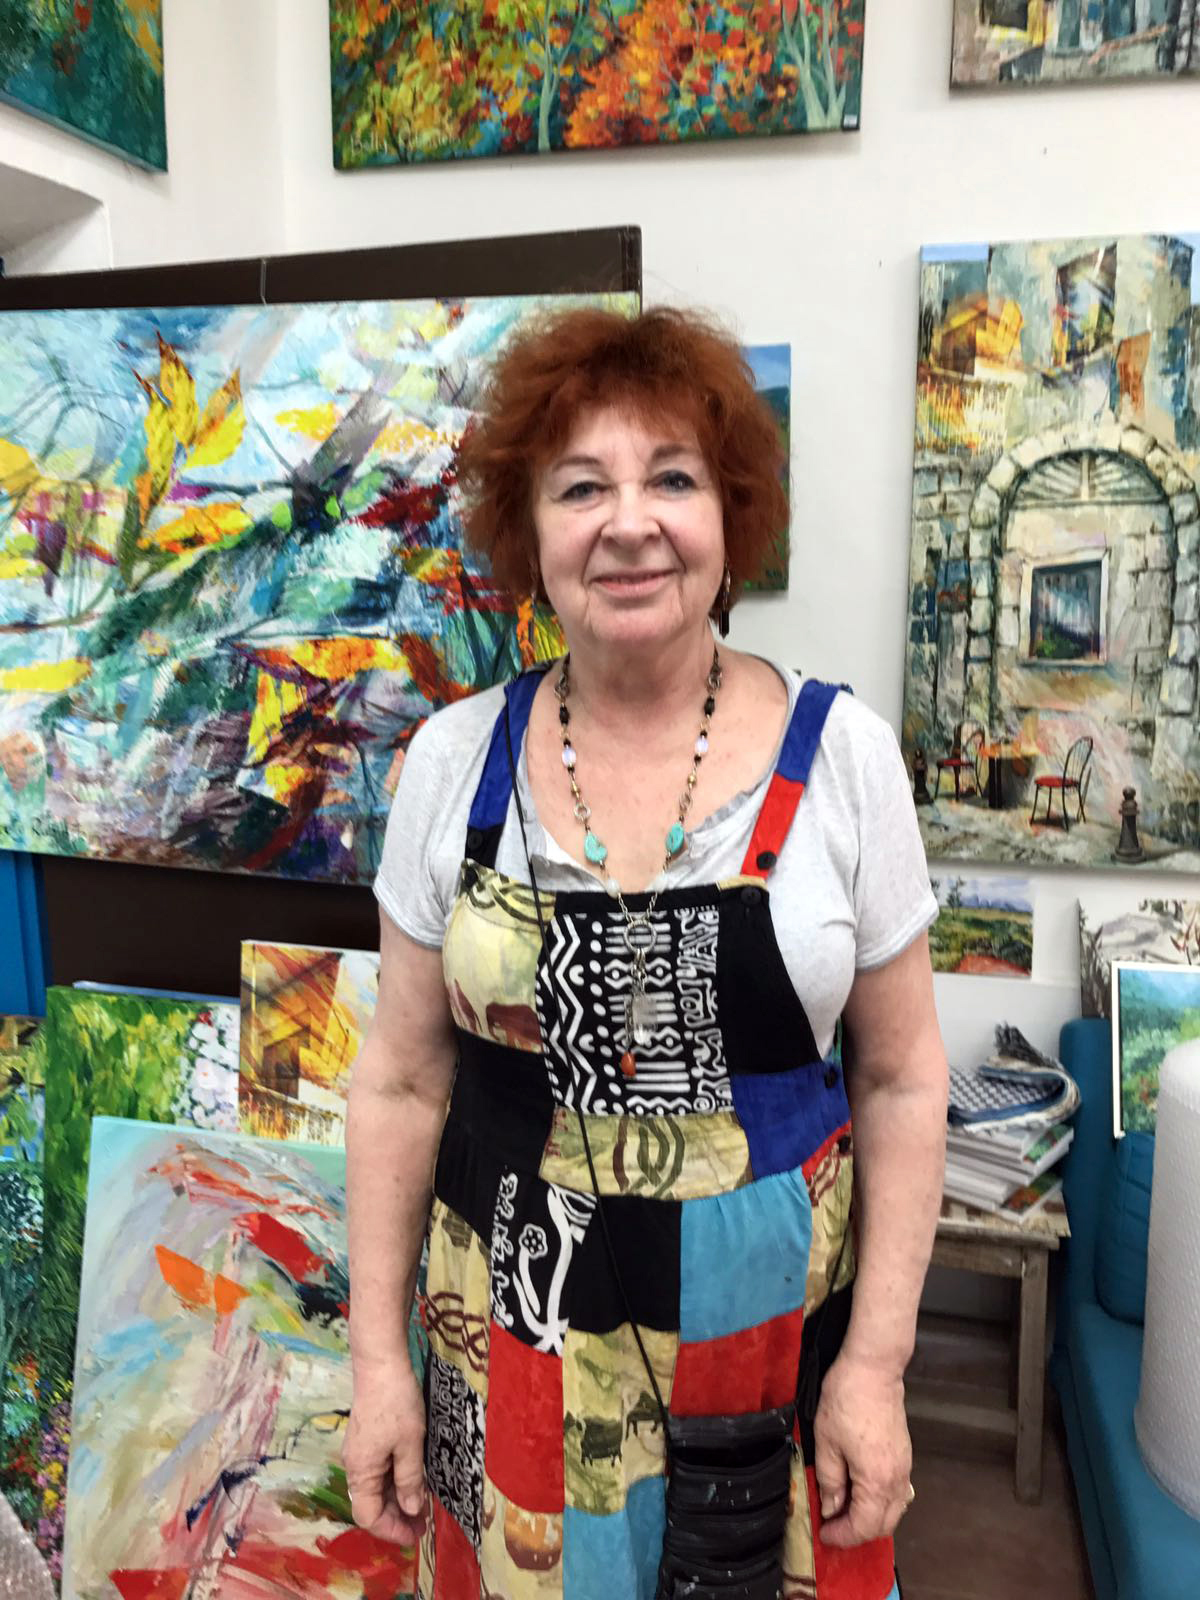 Betty Rubinstein at her studio in Zikhron Ya'akov, Israel, 2017. See more of her work at  www.bettyrubinstein.co.il/en .